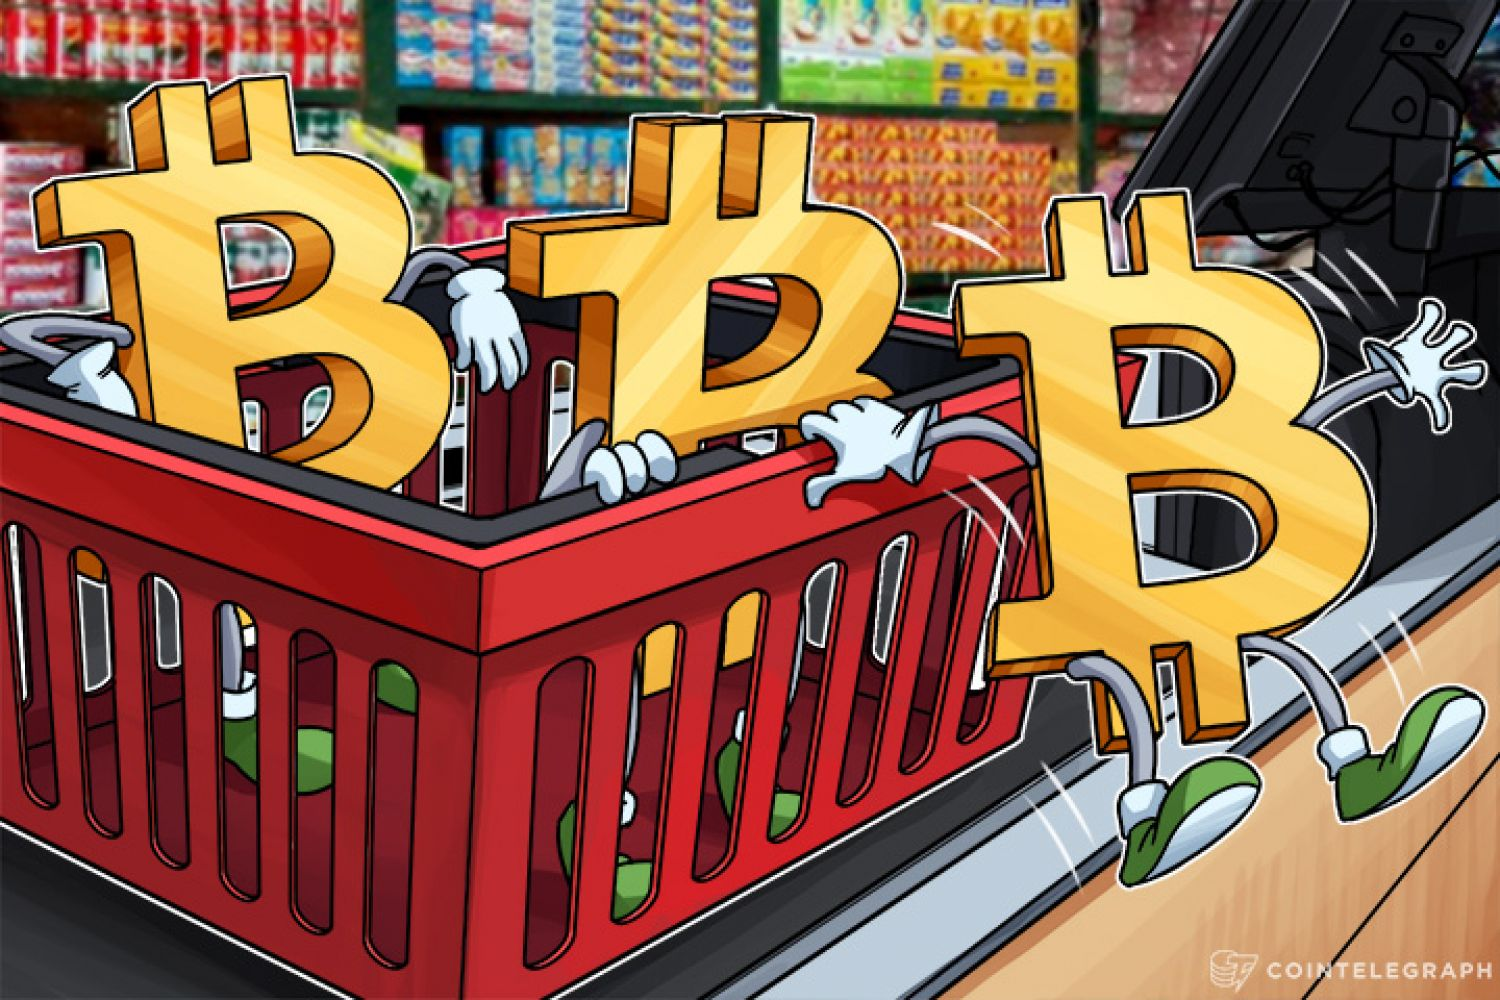 Bitcoins in a basket